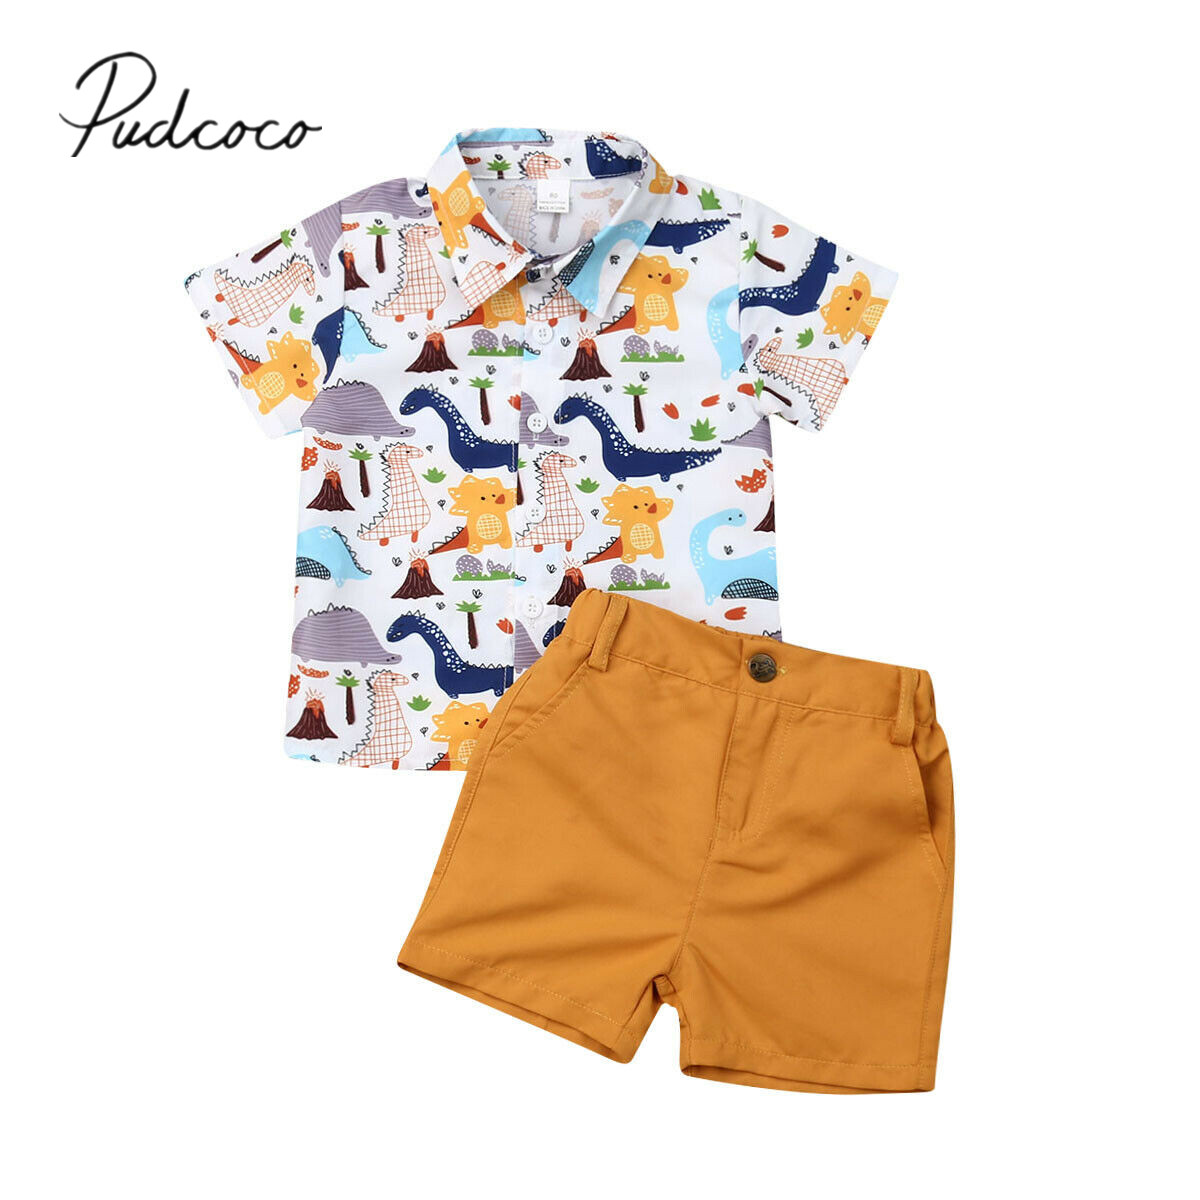 Shorts 1-5 Y Infant Baby Boy Shorts 2pcs Outfits Set,Summer Toddler Animal Printed Short Sleeve Button Down Shirt